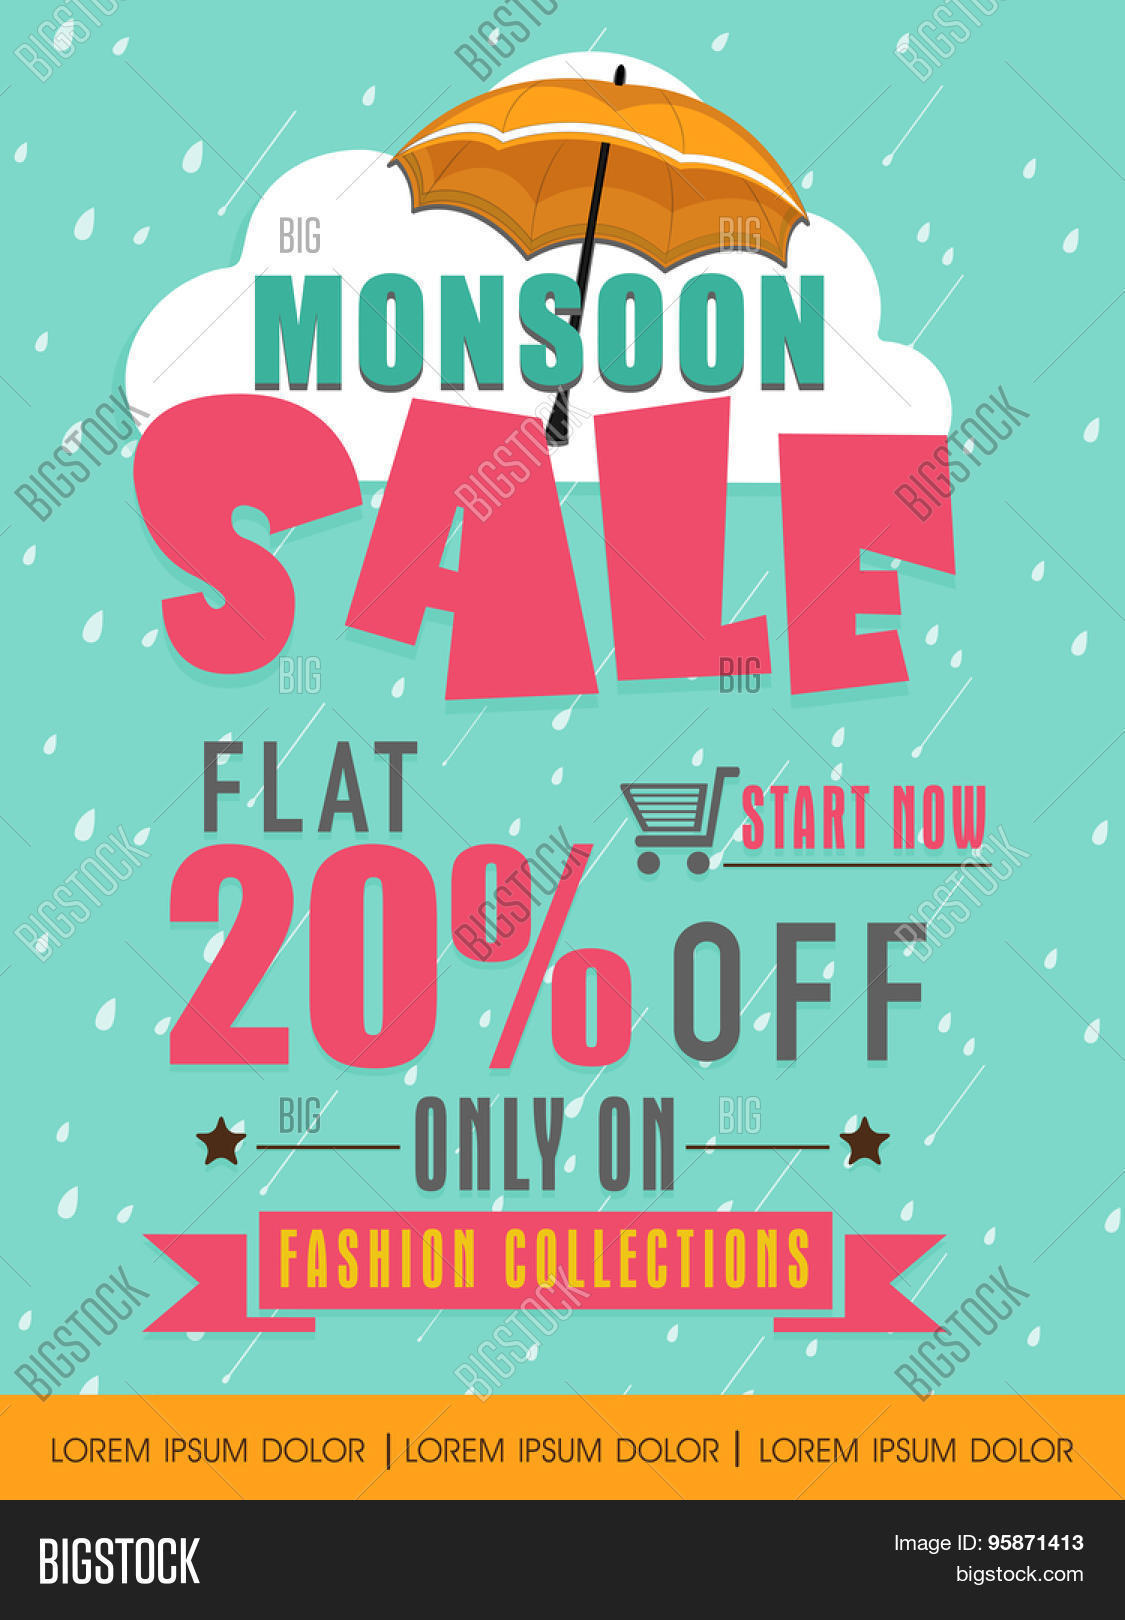 monsoon flat % discount offer on fashion collection monsoon flat 20% discount offer on fashion collection creative template banner